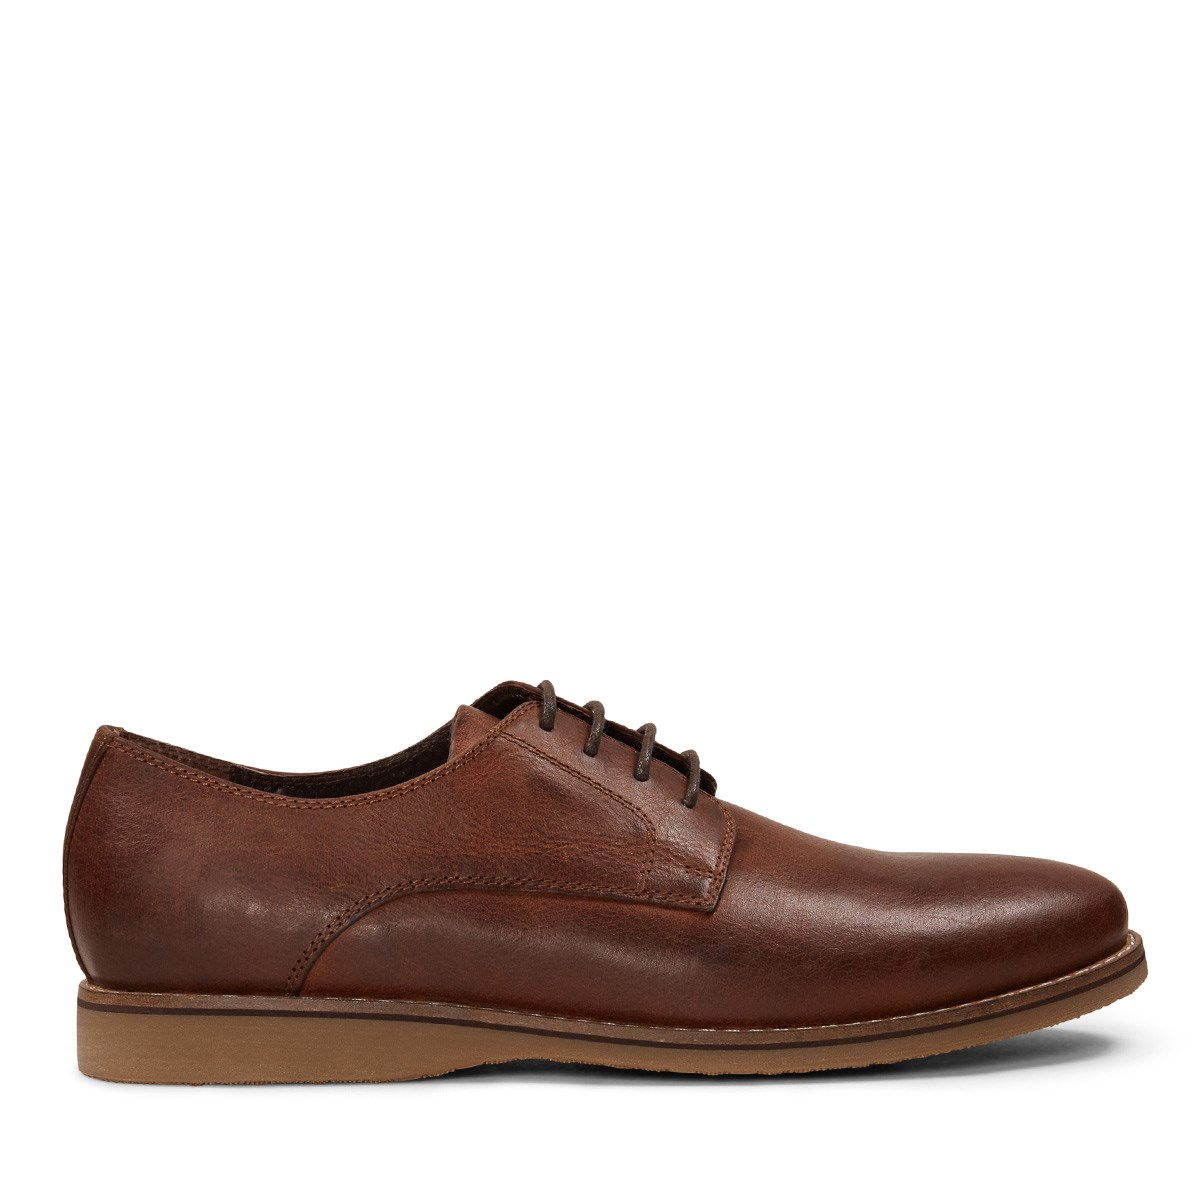 Men's Tan Distressed Leather Lace-Up Shoe